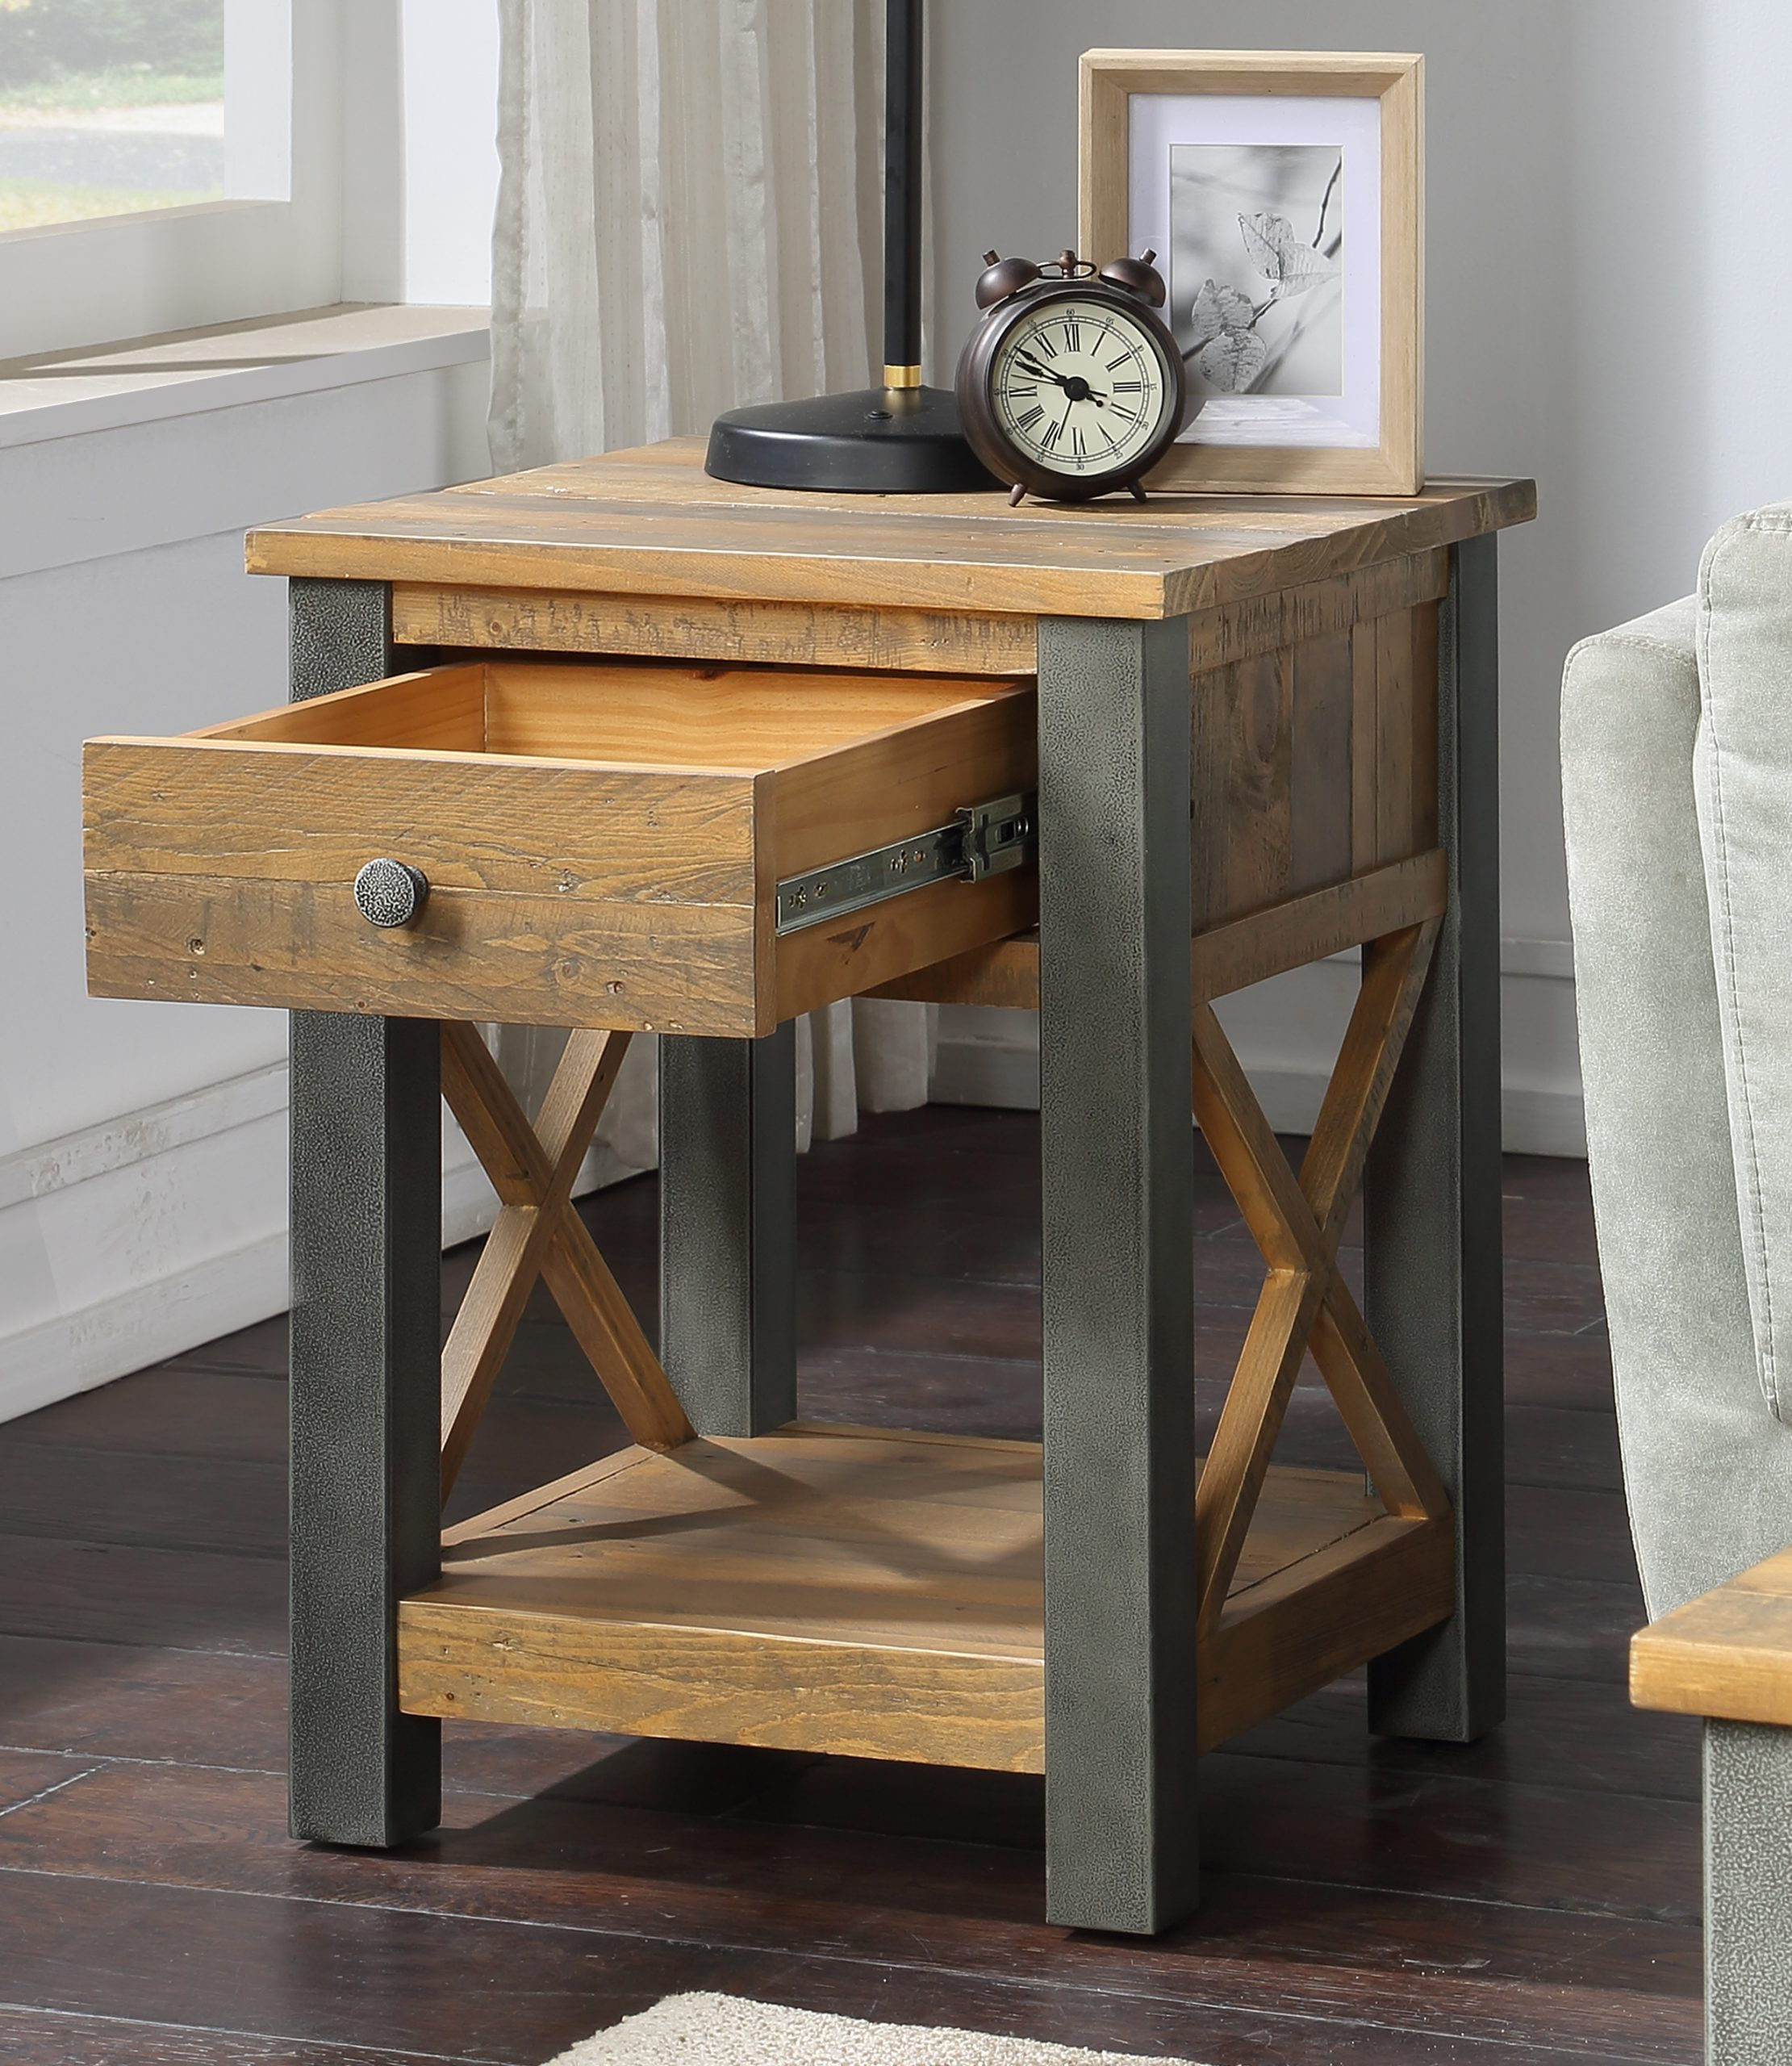 lamp table with open drawer